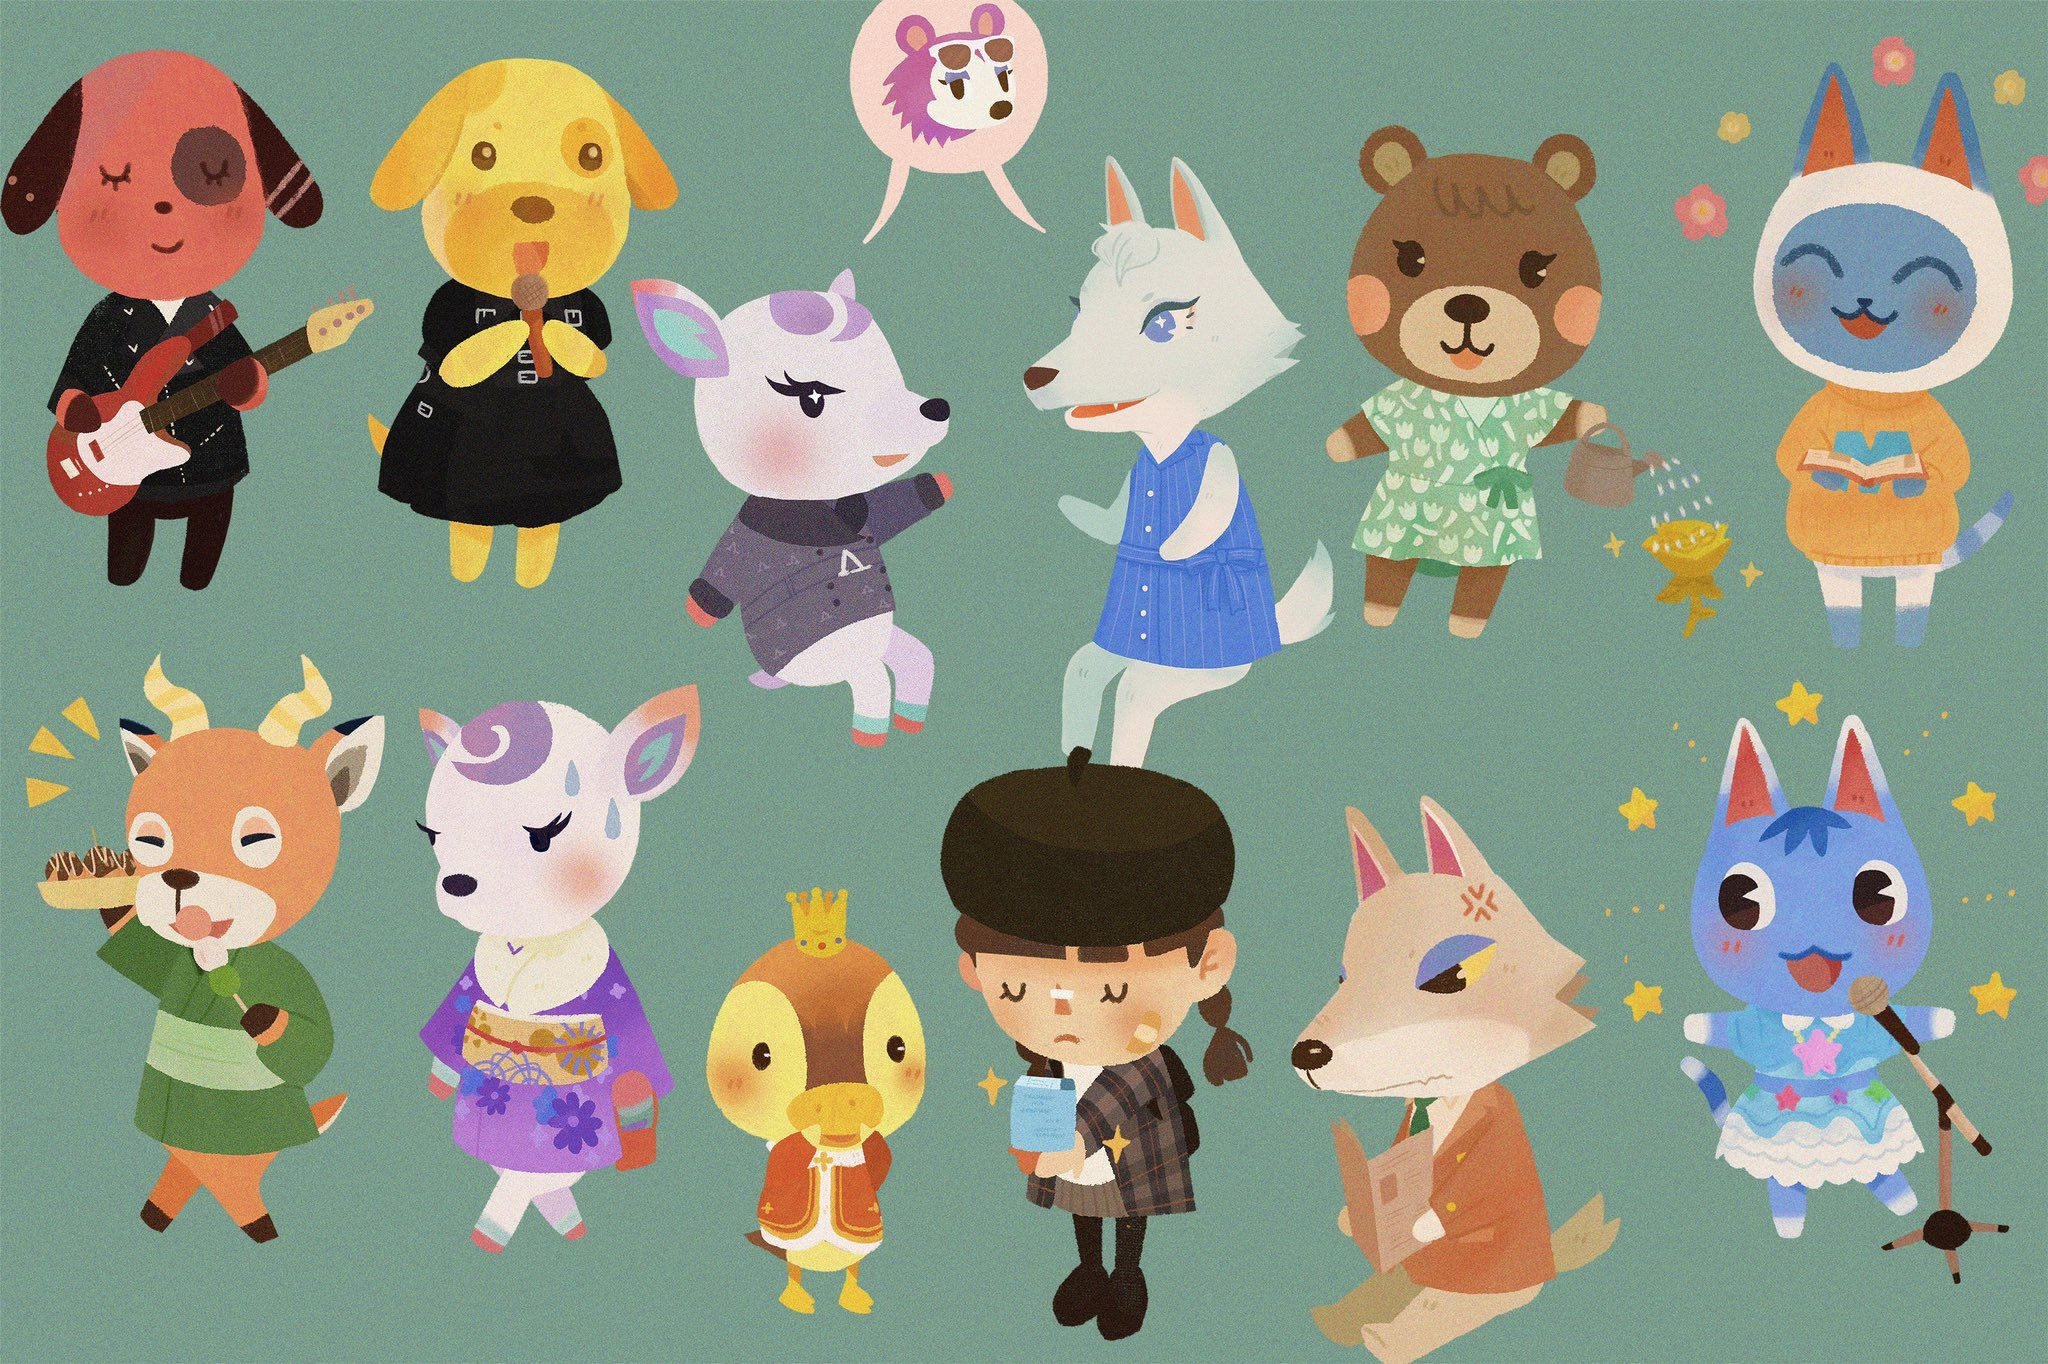 Pin on Animal Crossing New Horizons | Her Busy Day